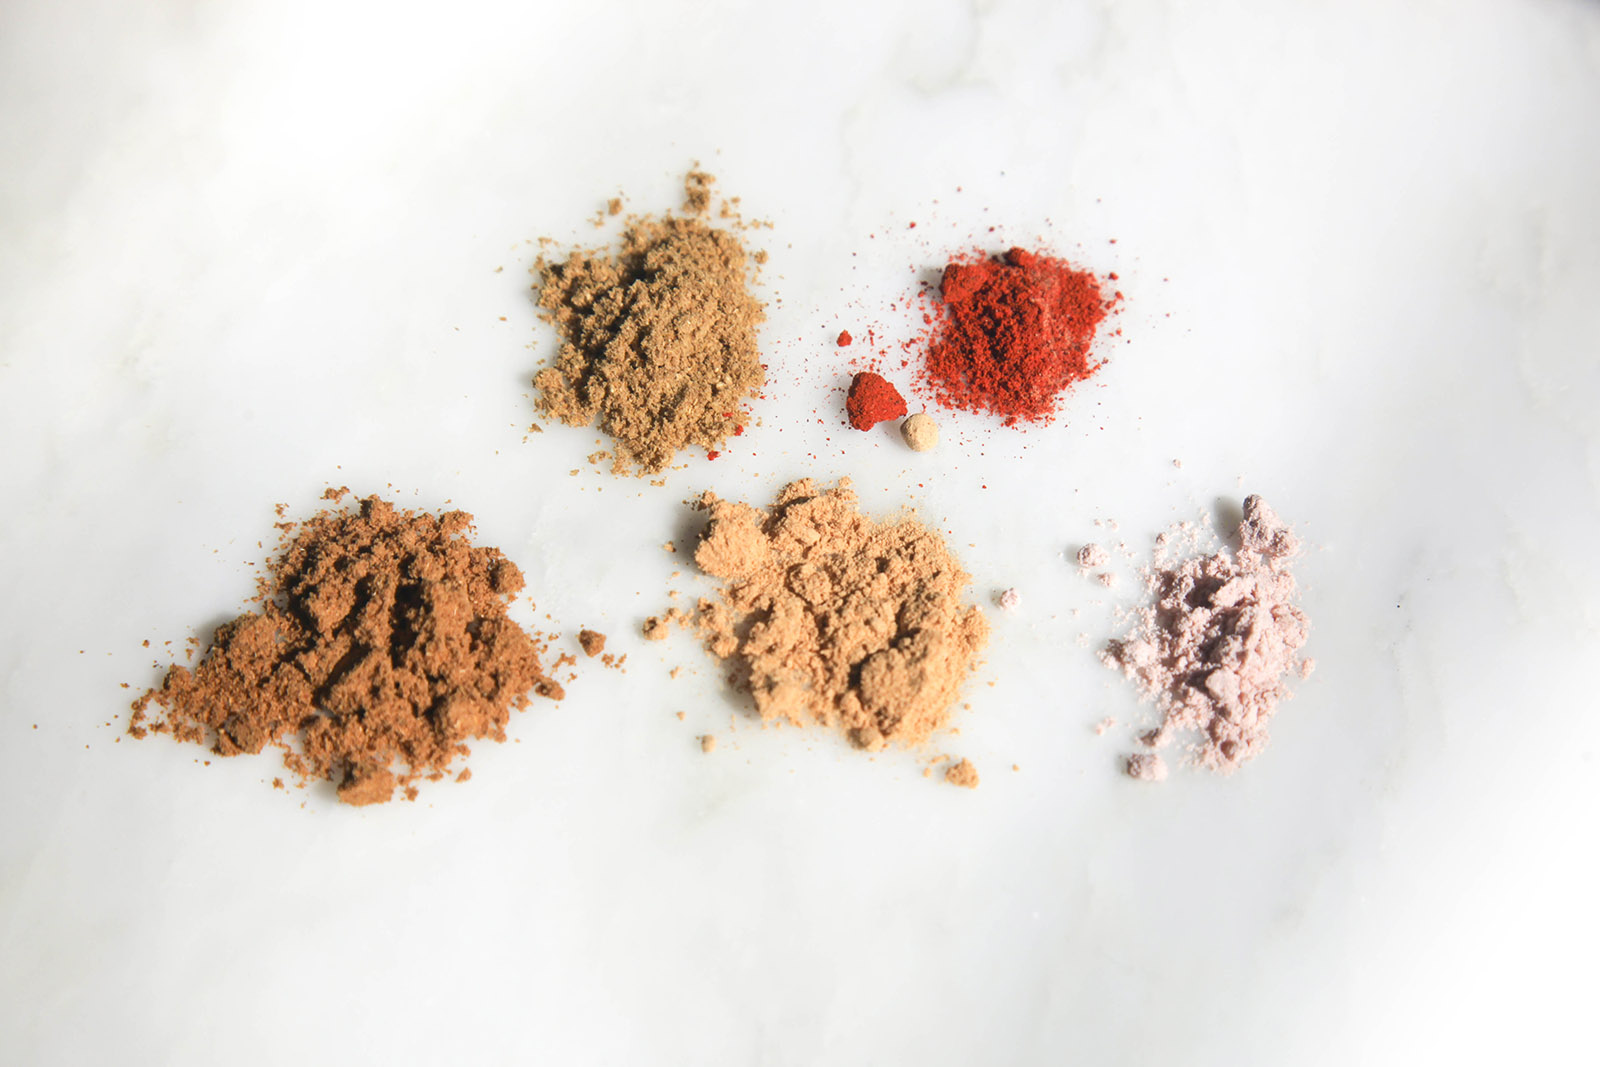 Powdered spices for Crispy Spiced Fried Okra Snack